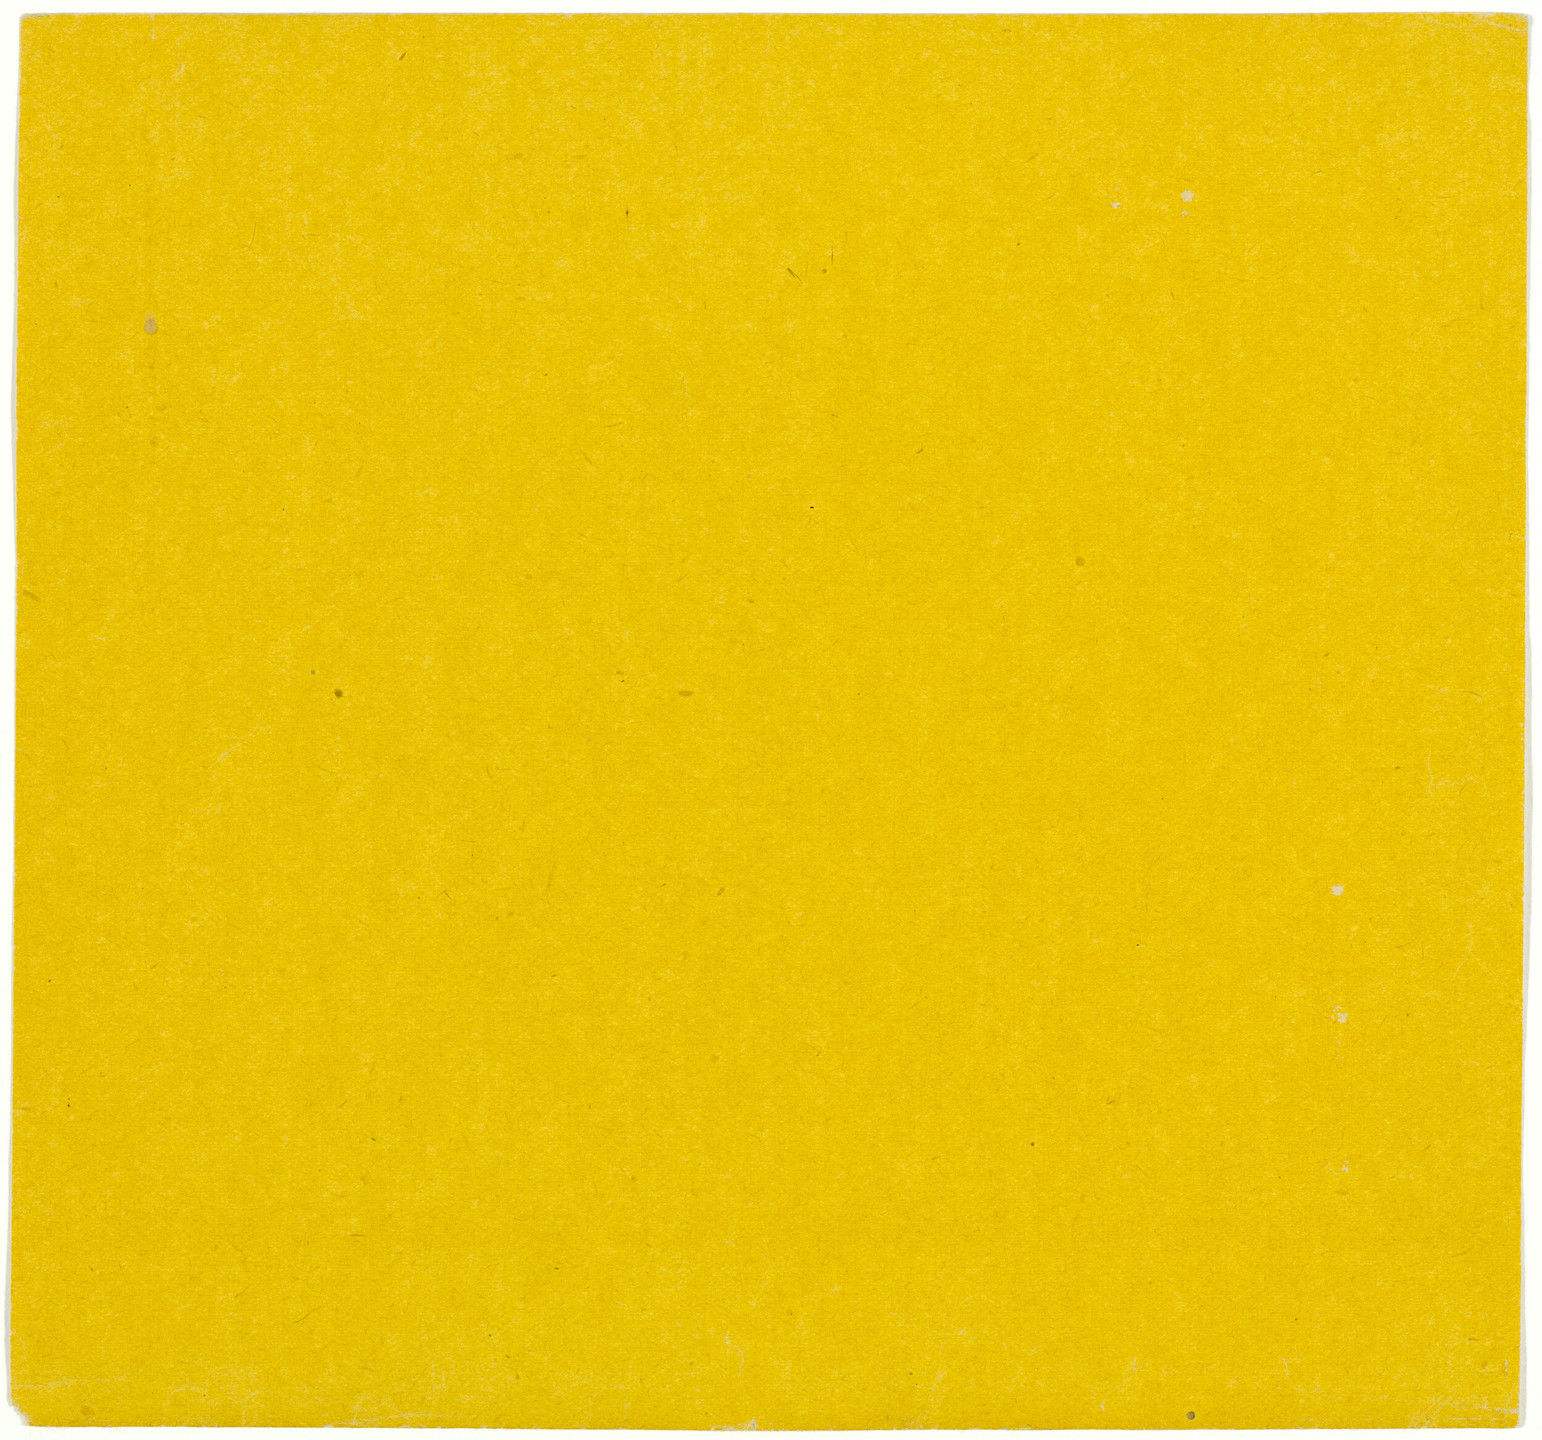 Ellsworth Kelly. Yellow from the series Line Form Color. 1951